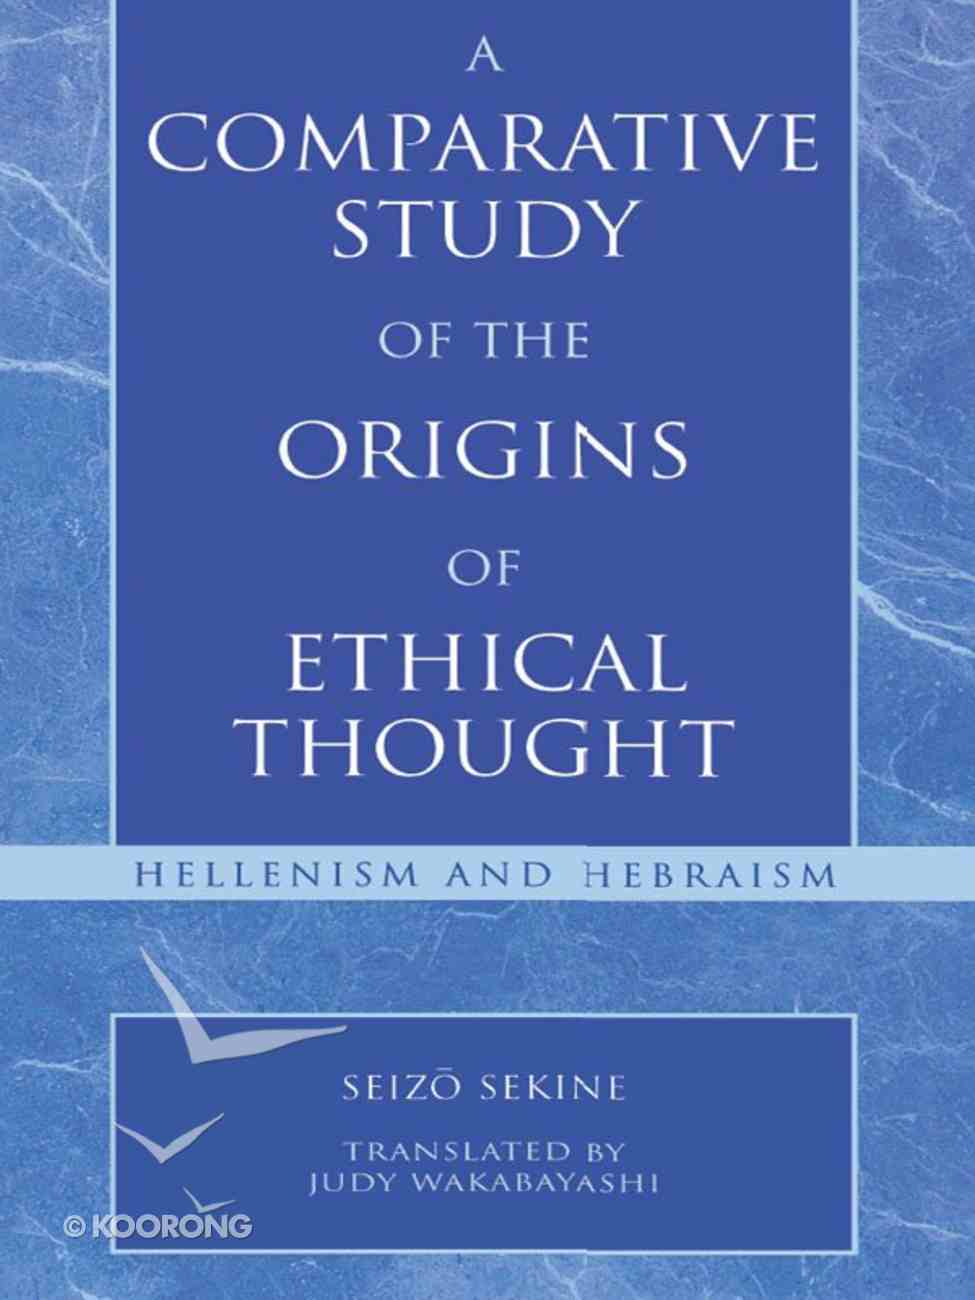 A Comparative Study of the Origins of Ethical Thought eBook